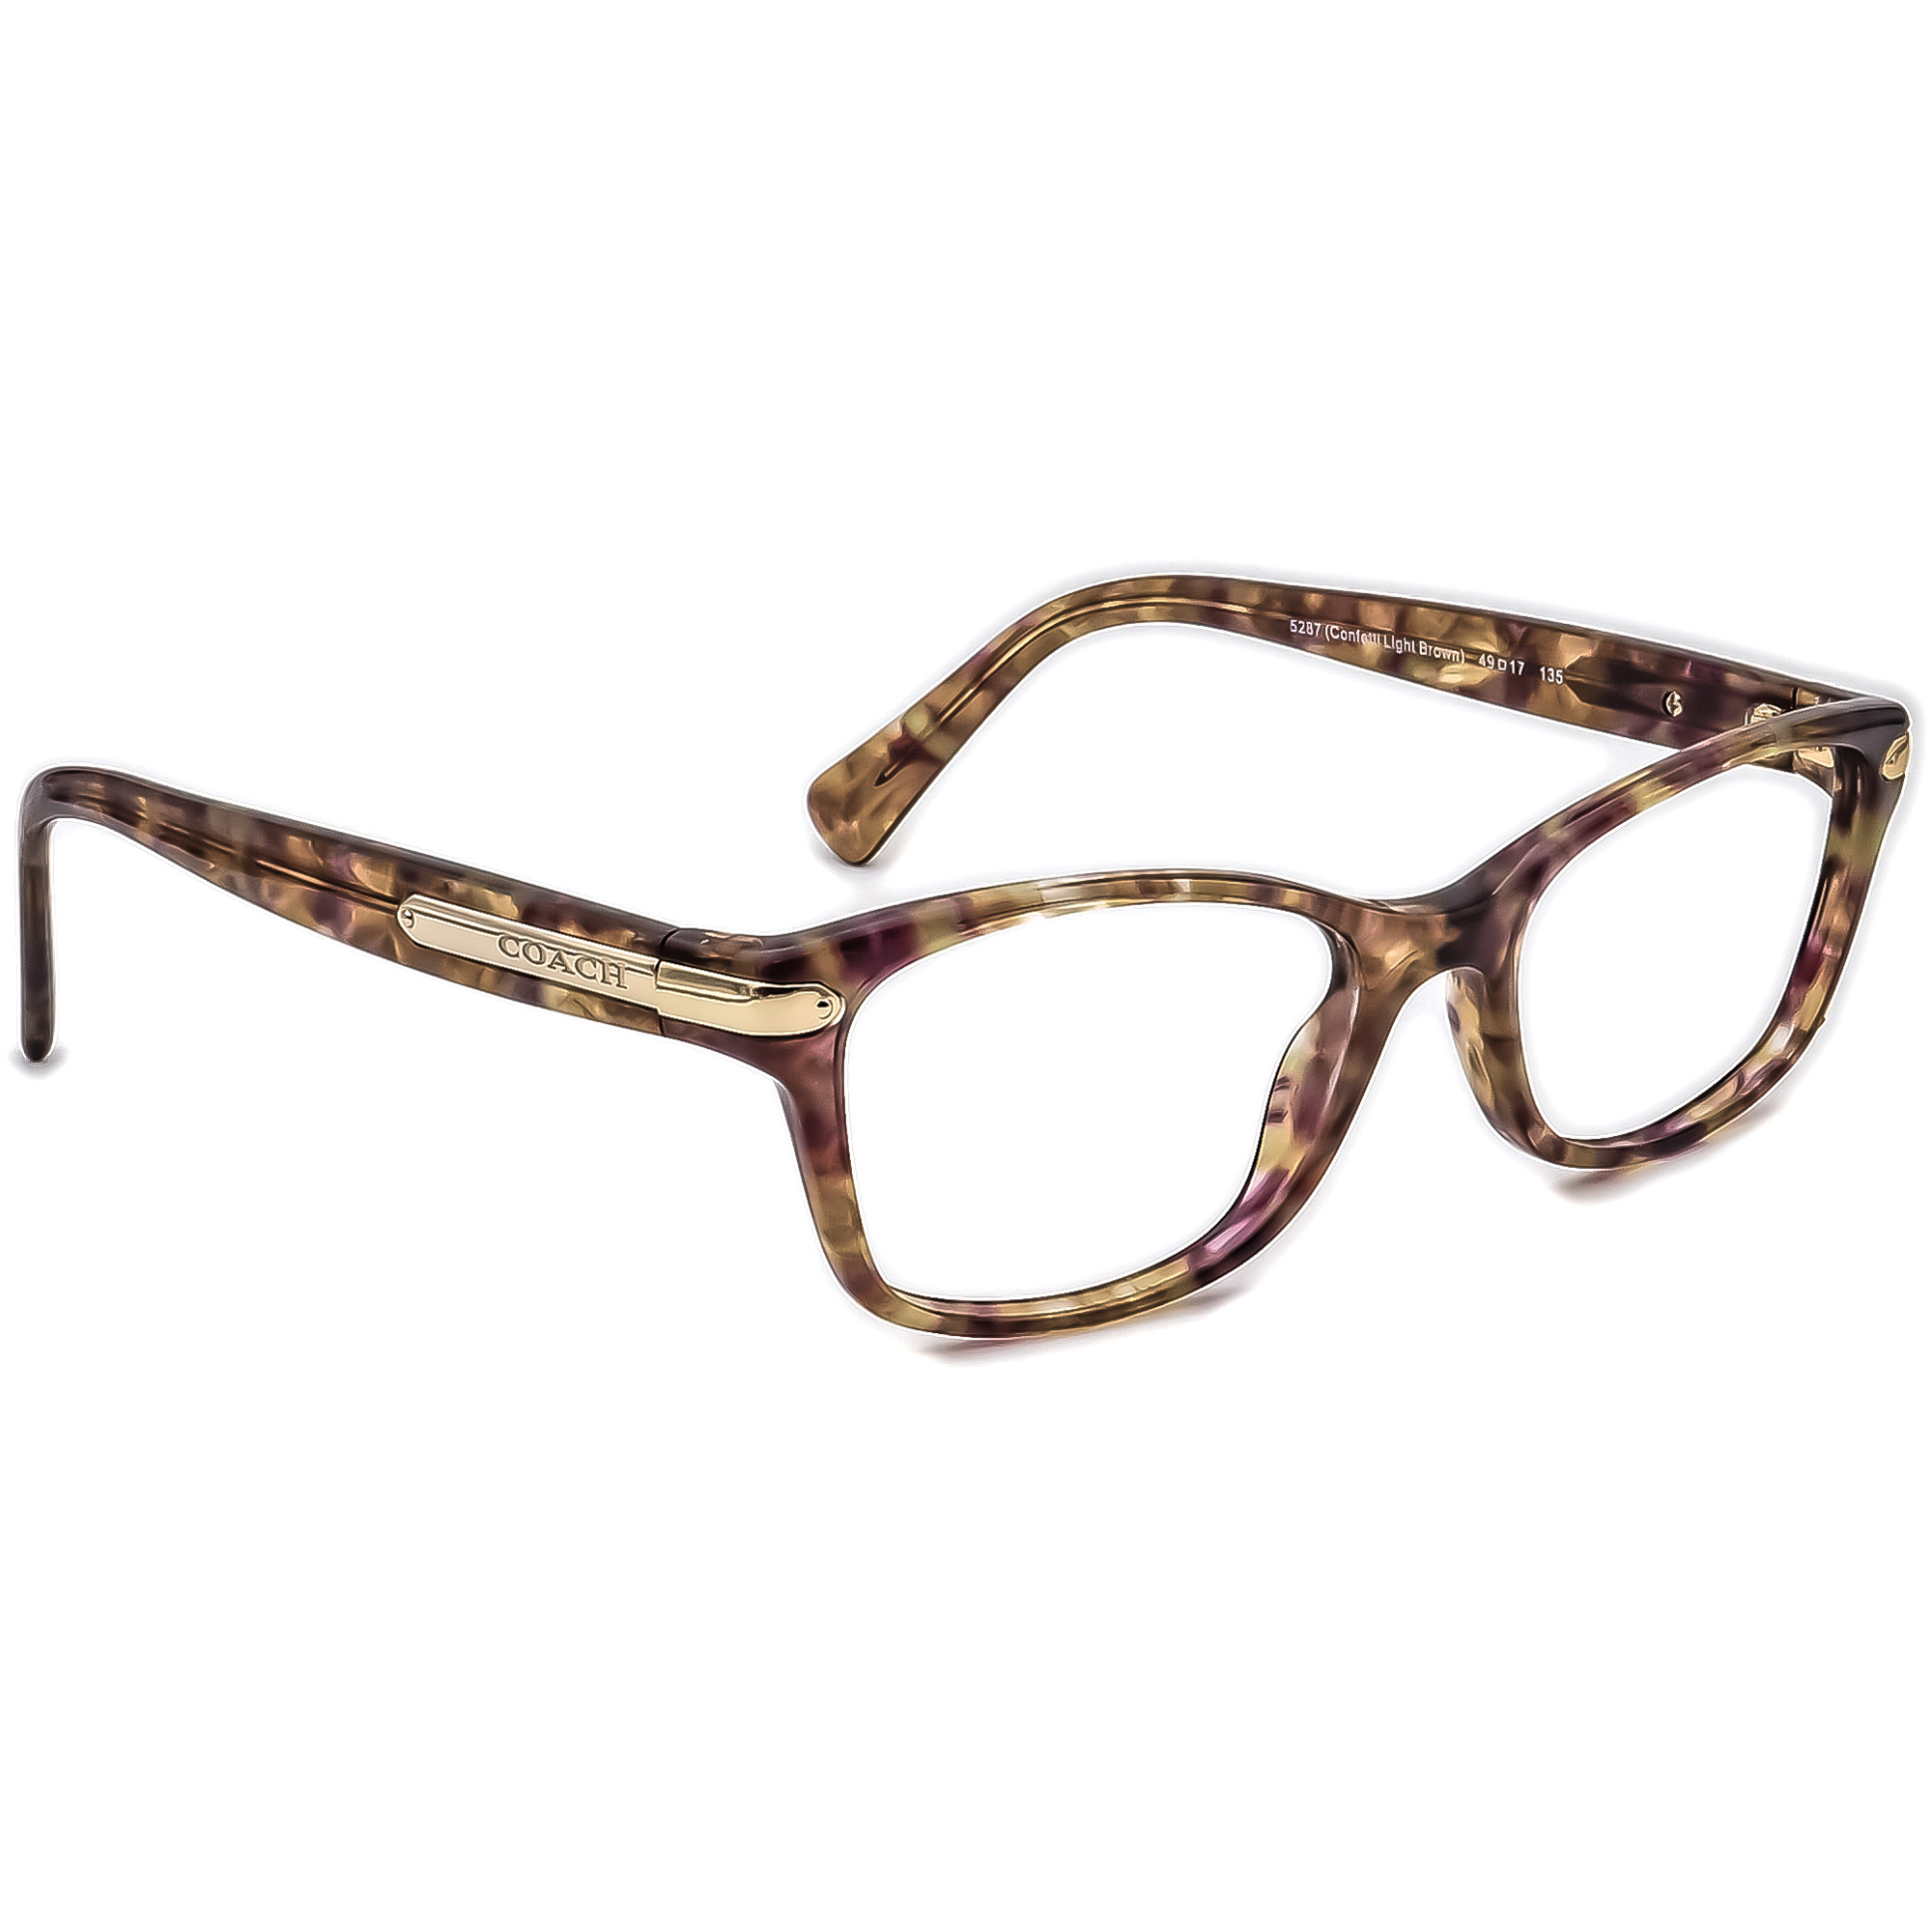 Coach HC 6065 5287 Eyeglasses